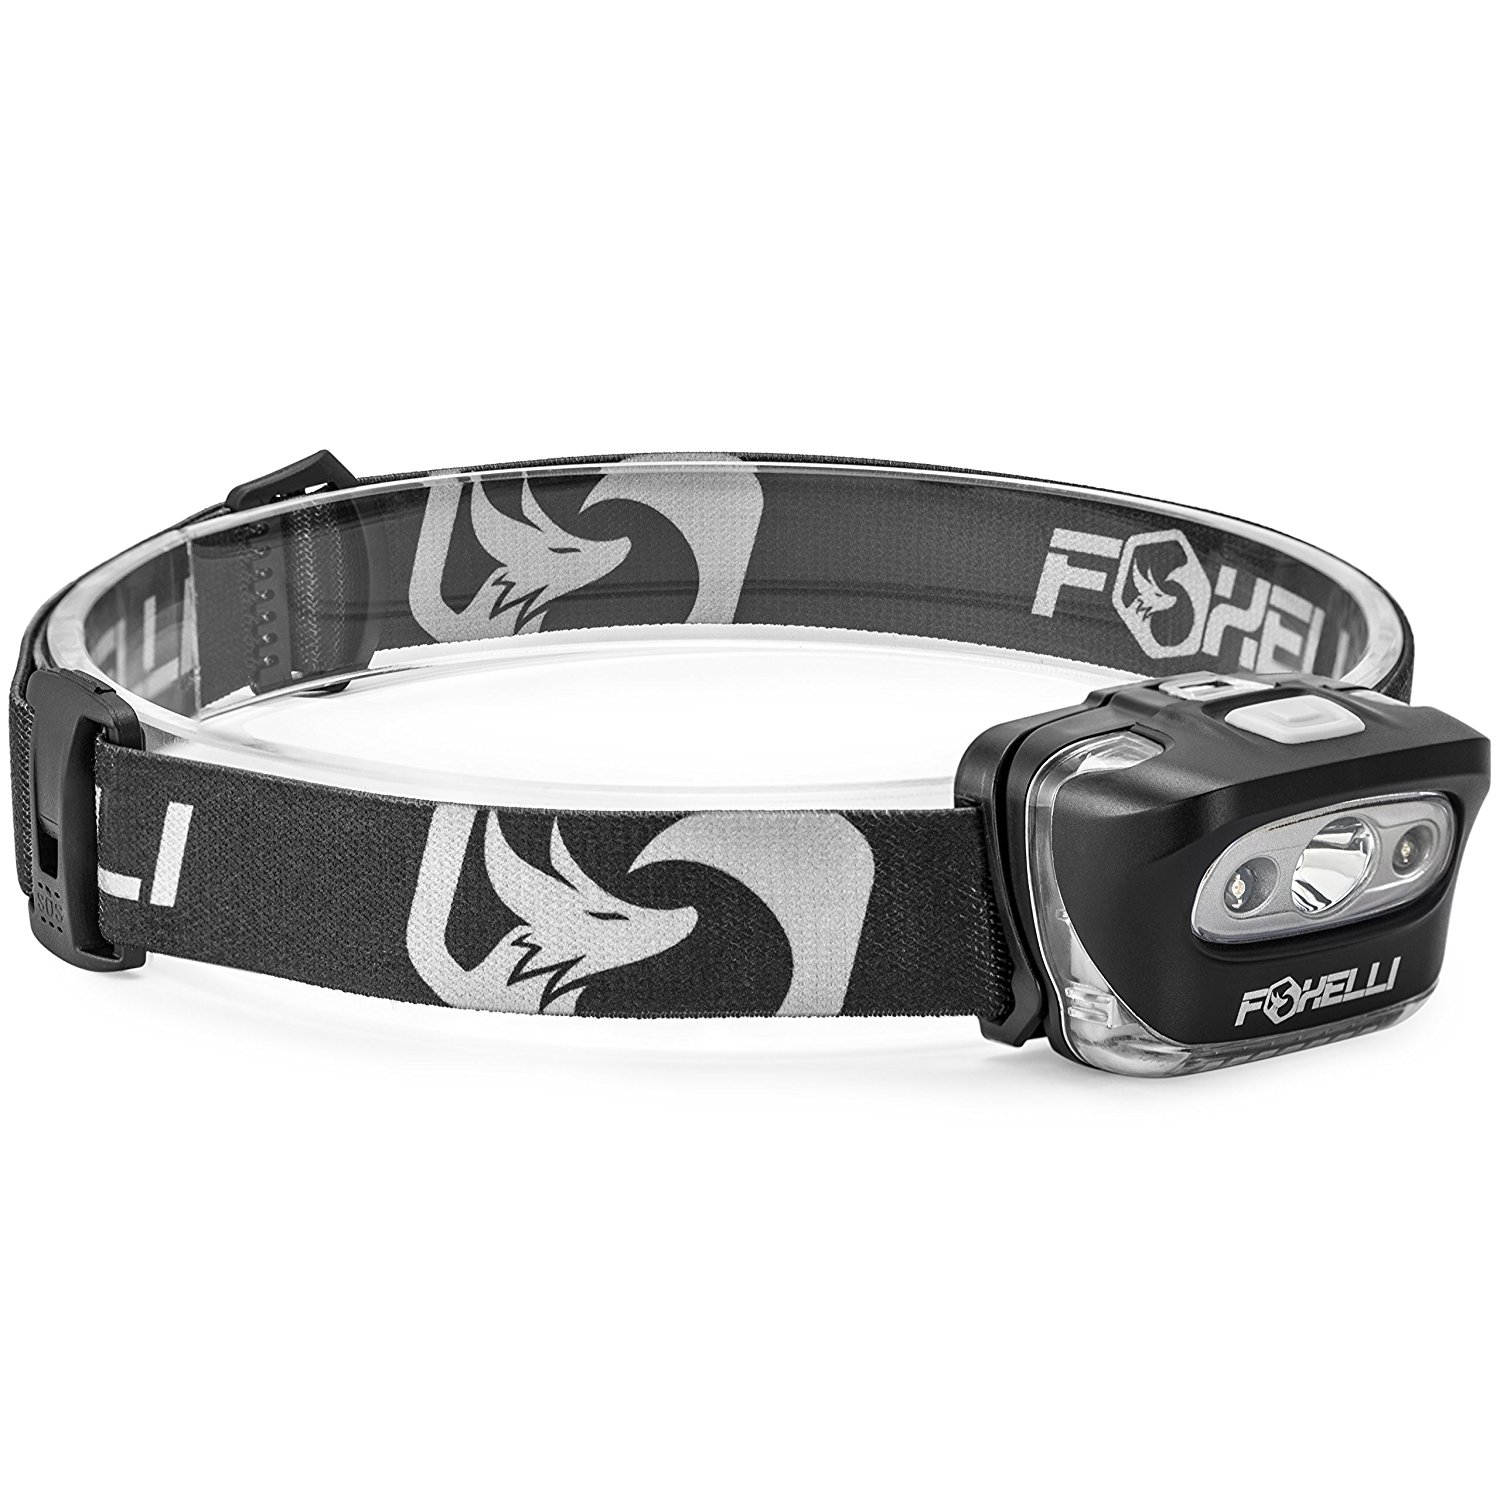 6. Foxelli Headlamp Flashlight